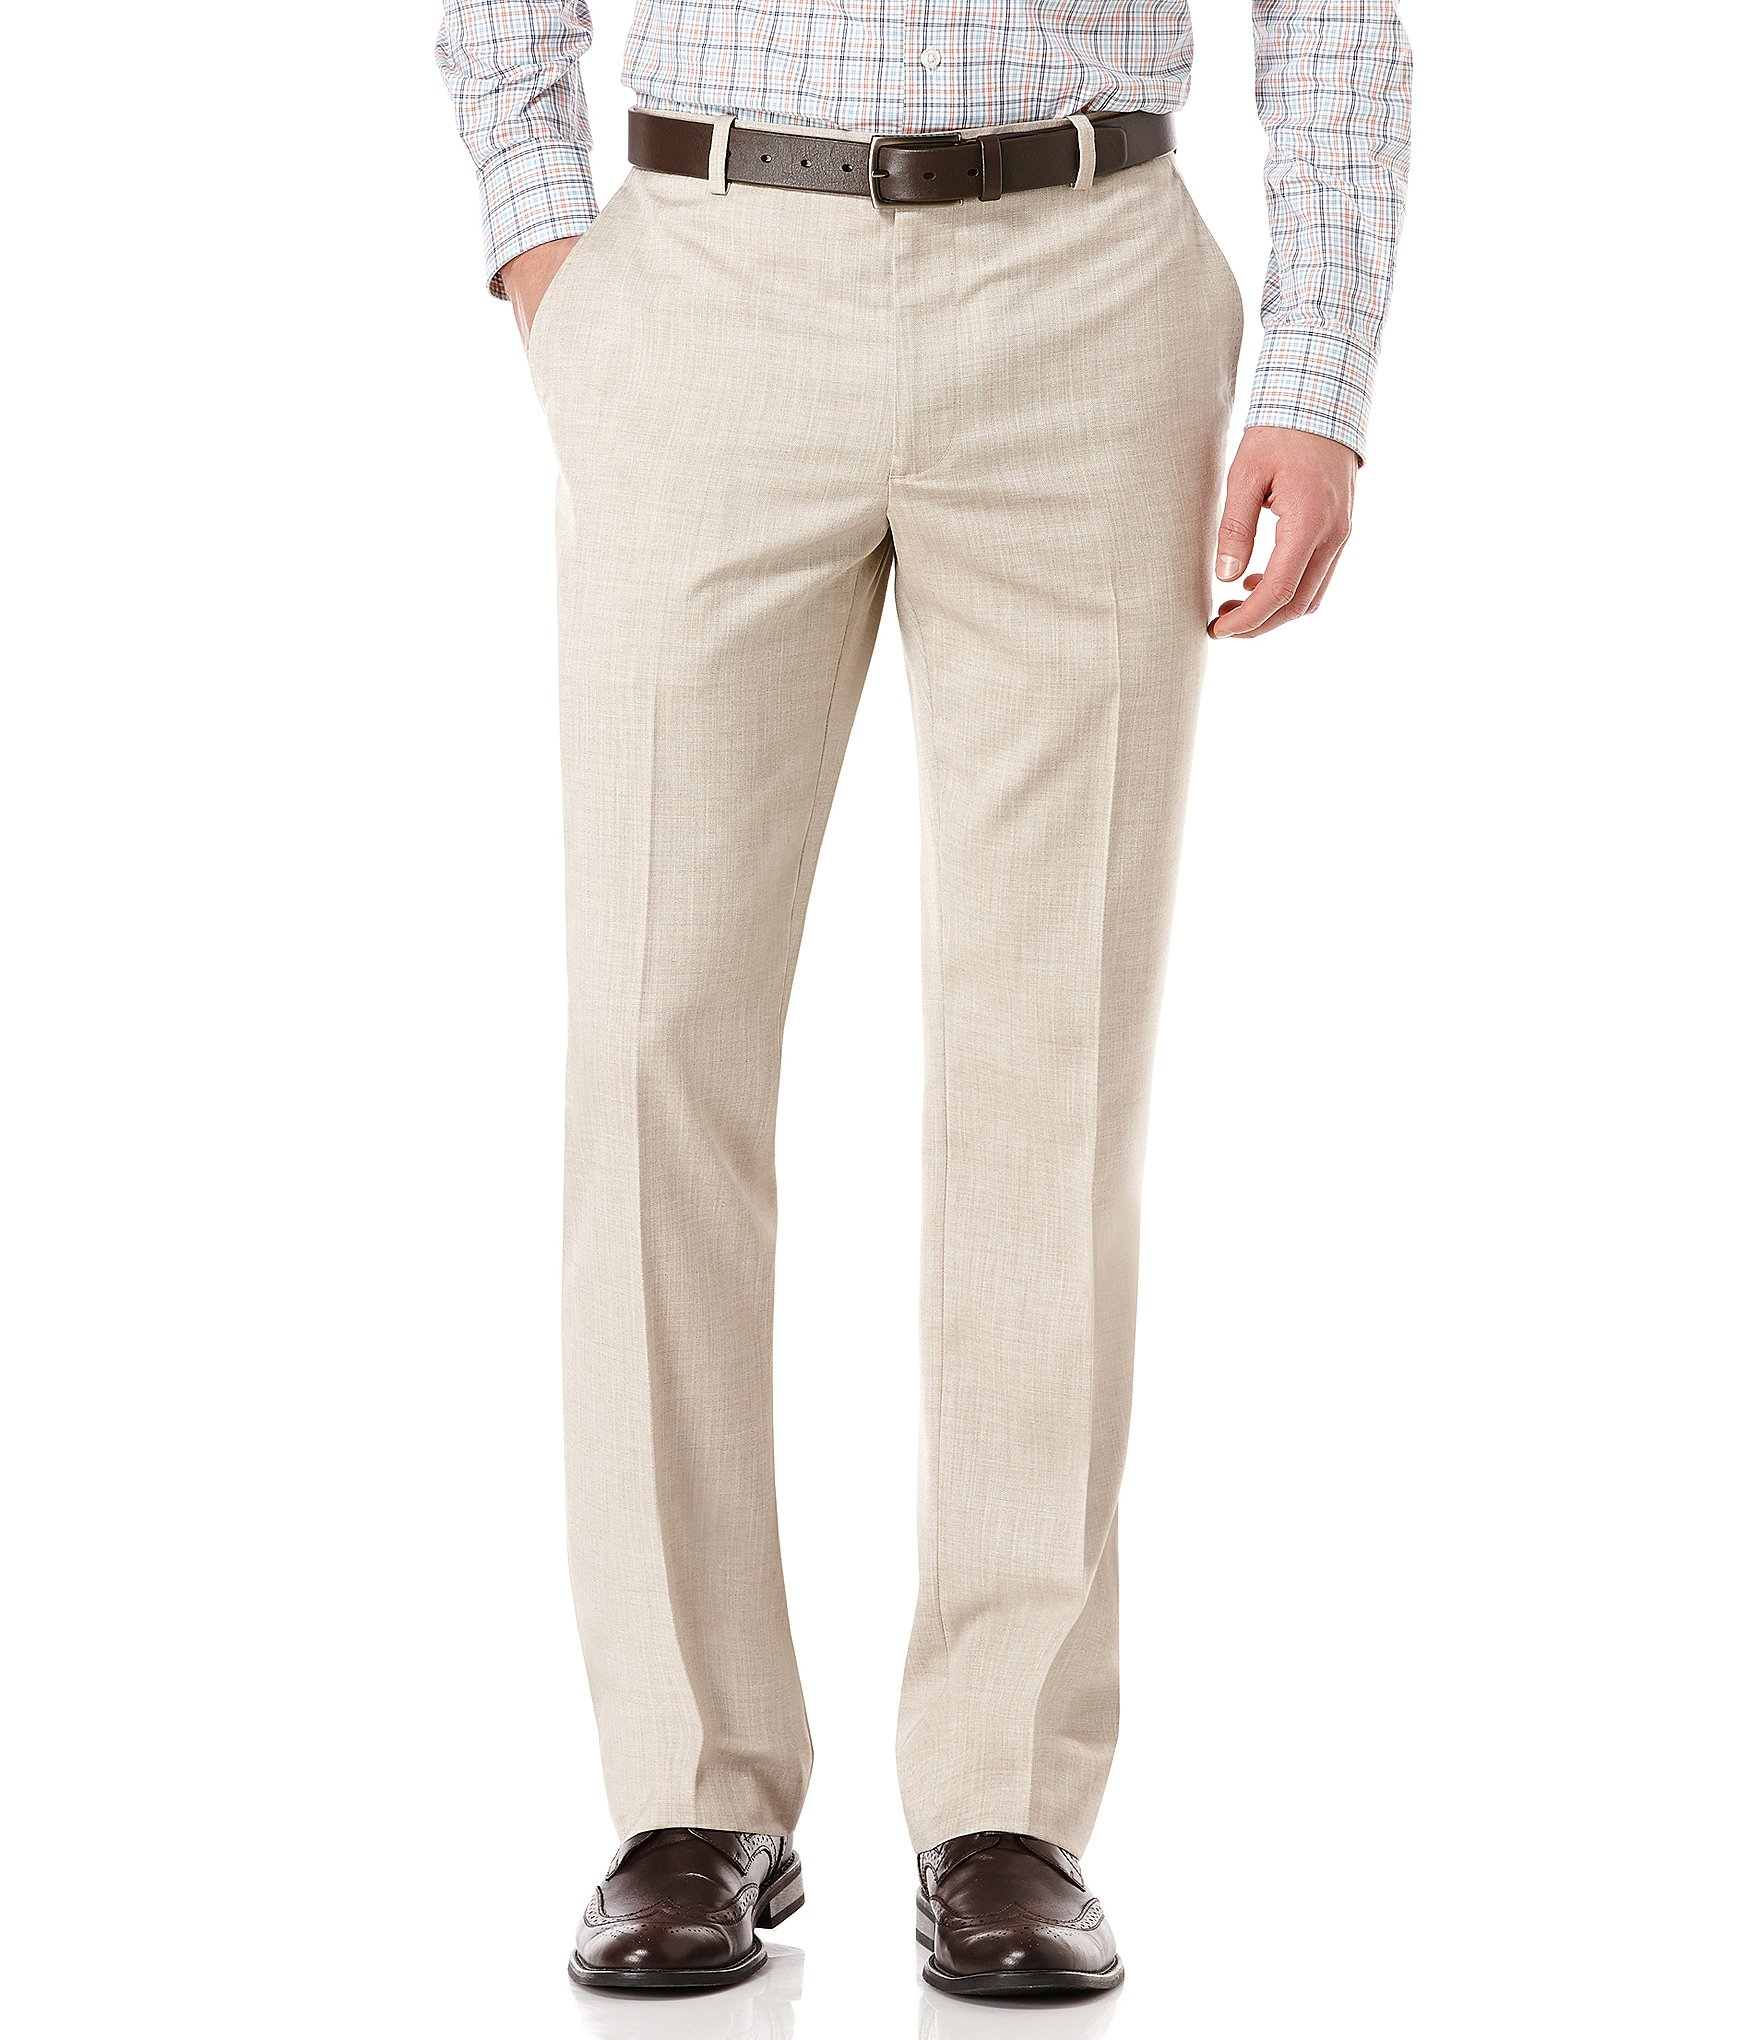 061cbc451 Perry Ellis Herringbone Regular Fit Flat-Front Suit Separates Pants ...